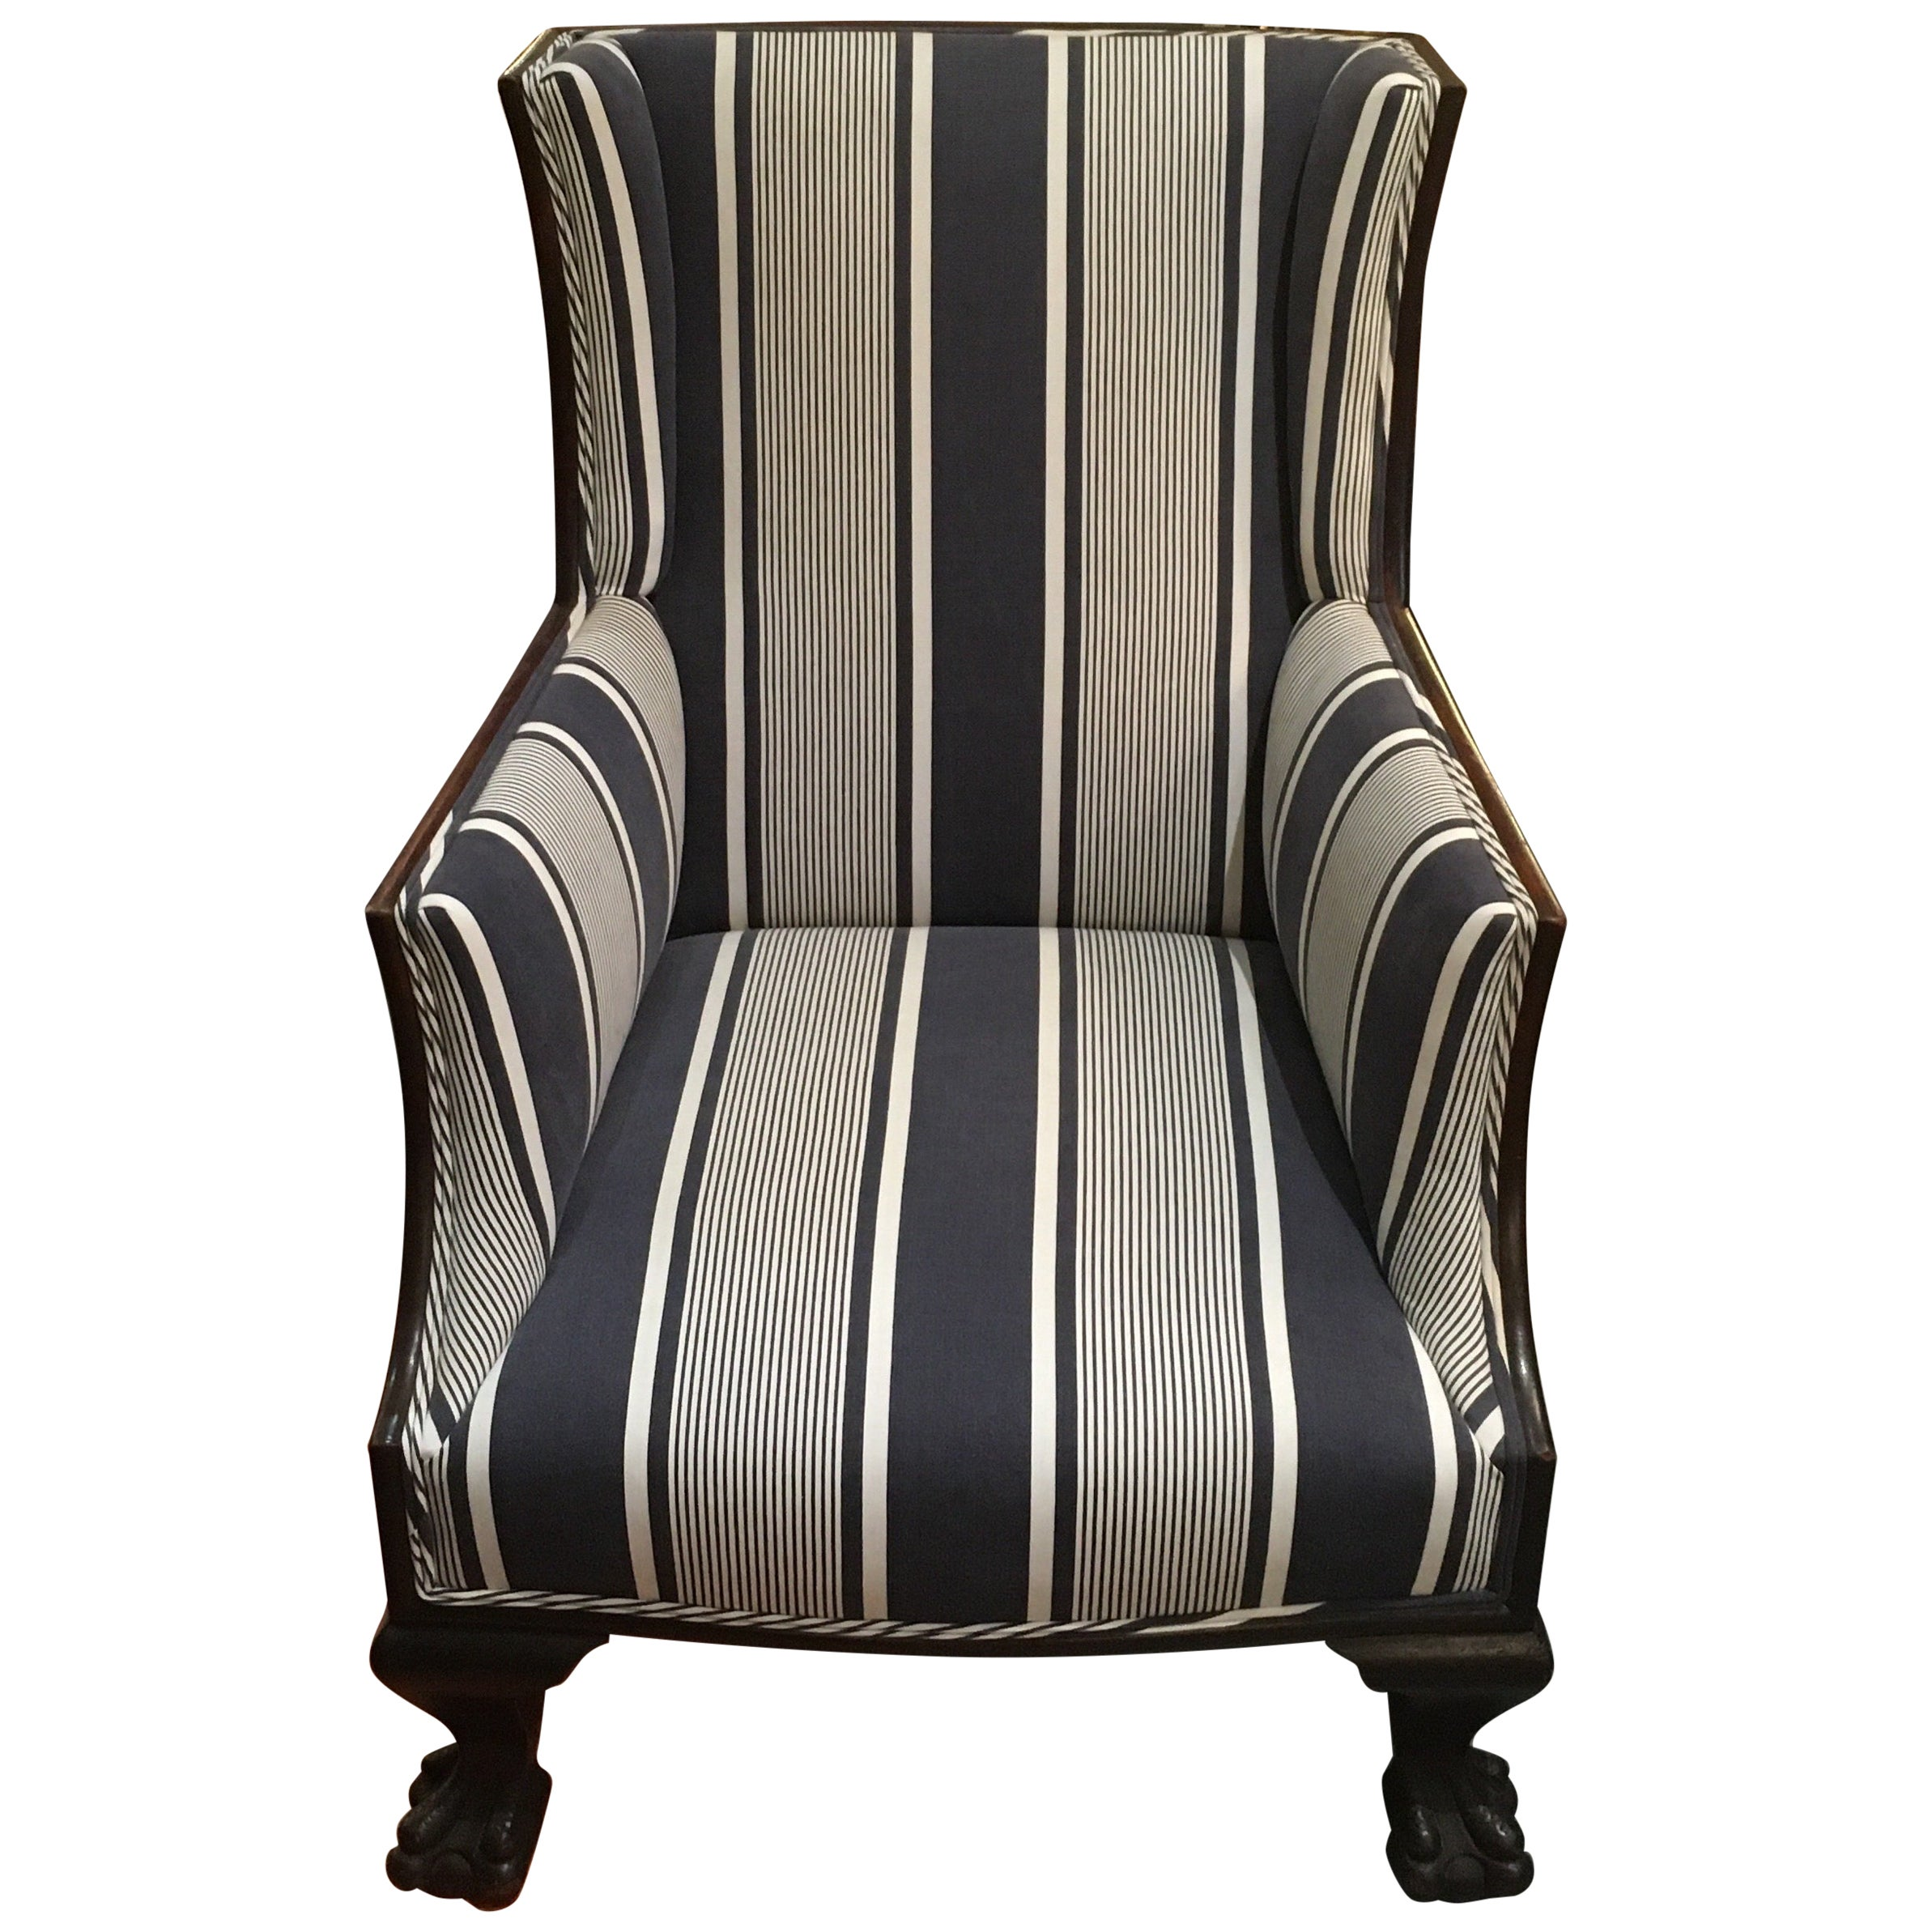 Antique Lion Paw Armchair in French Stripe Fabric